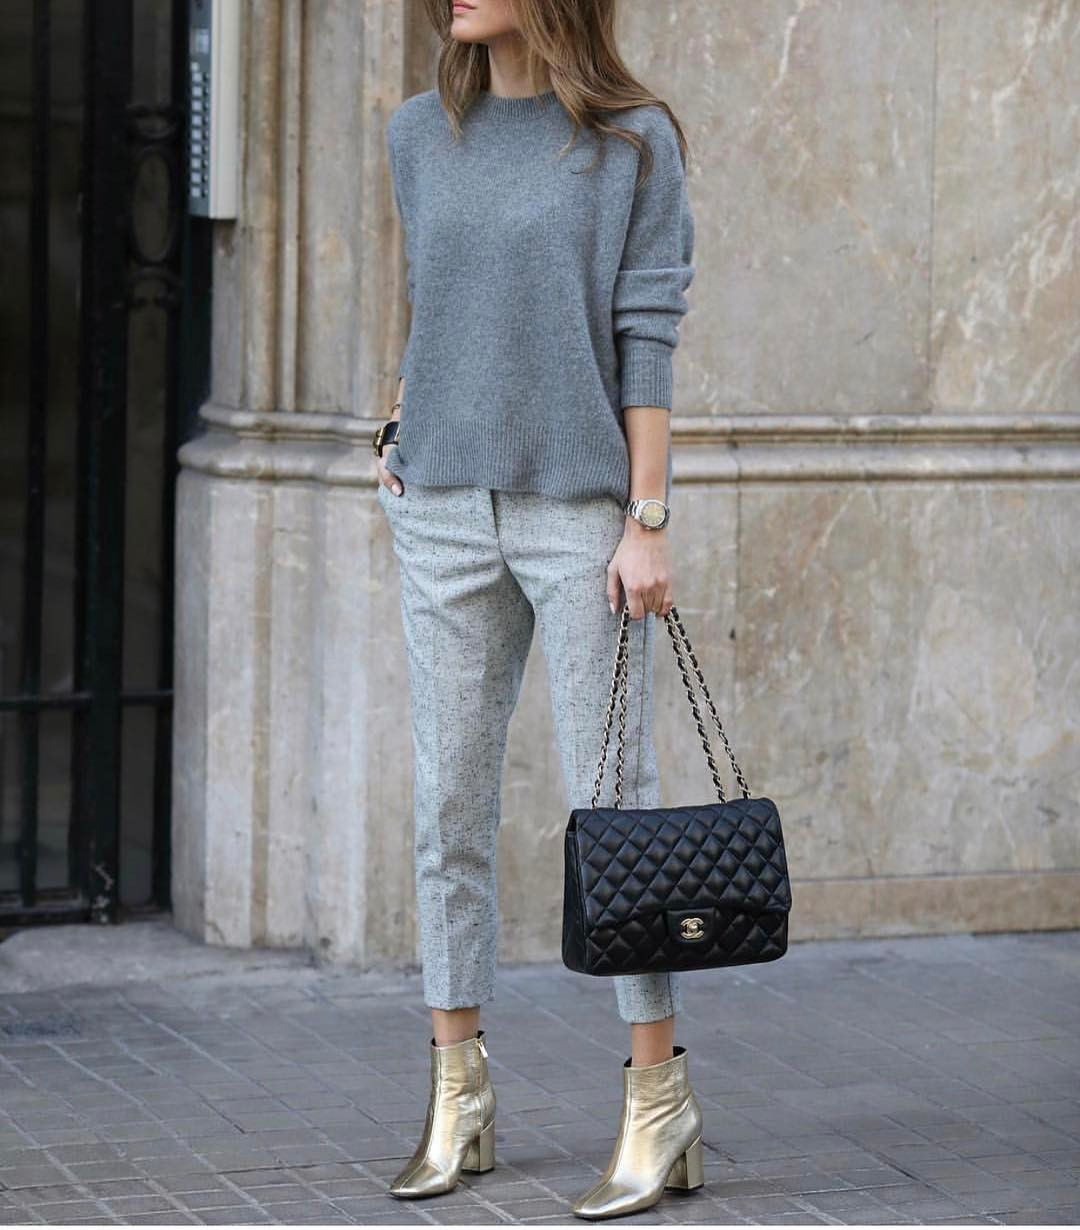 Can I Wear Metallic Gold Ankle Boots With Grey Monochrome Basics 2020